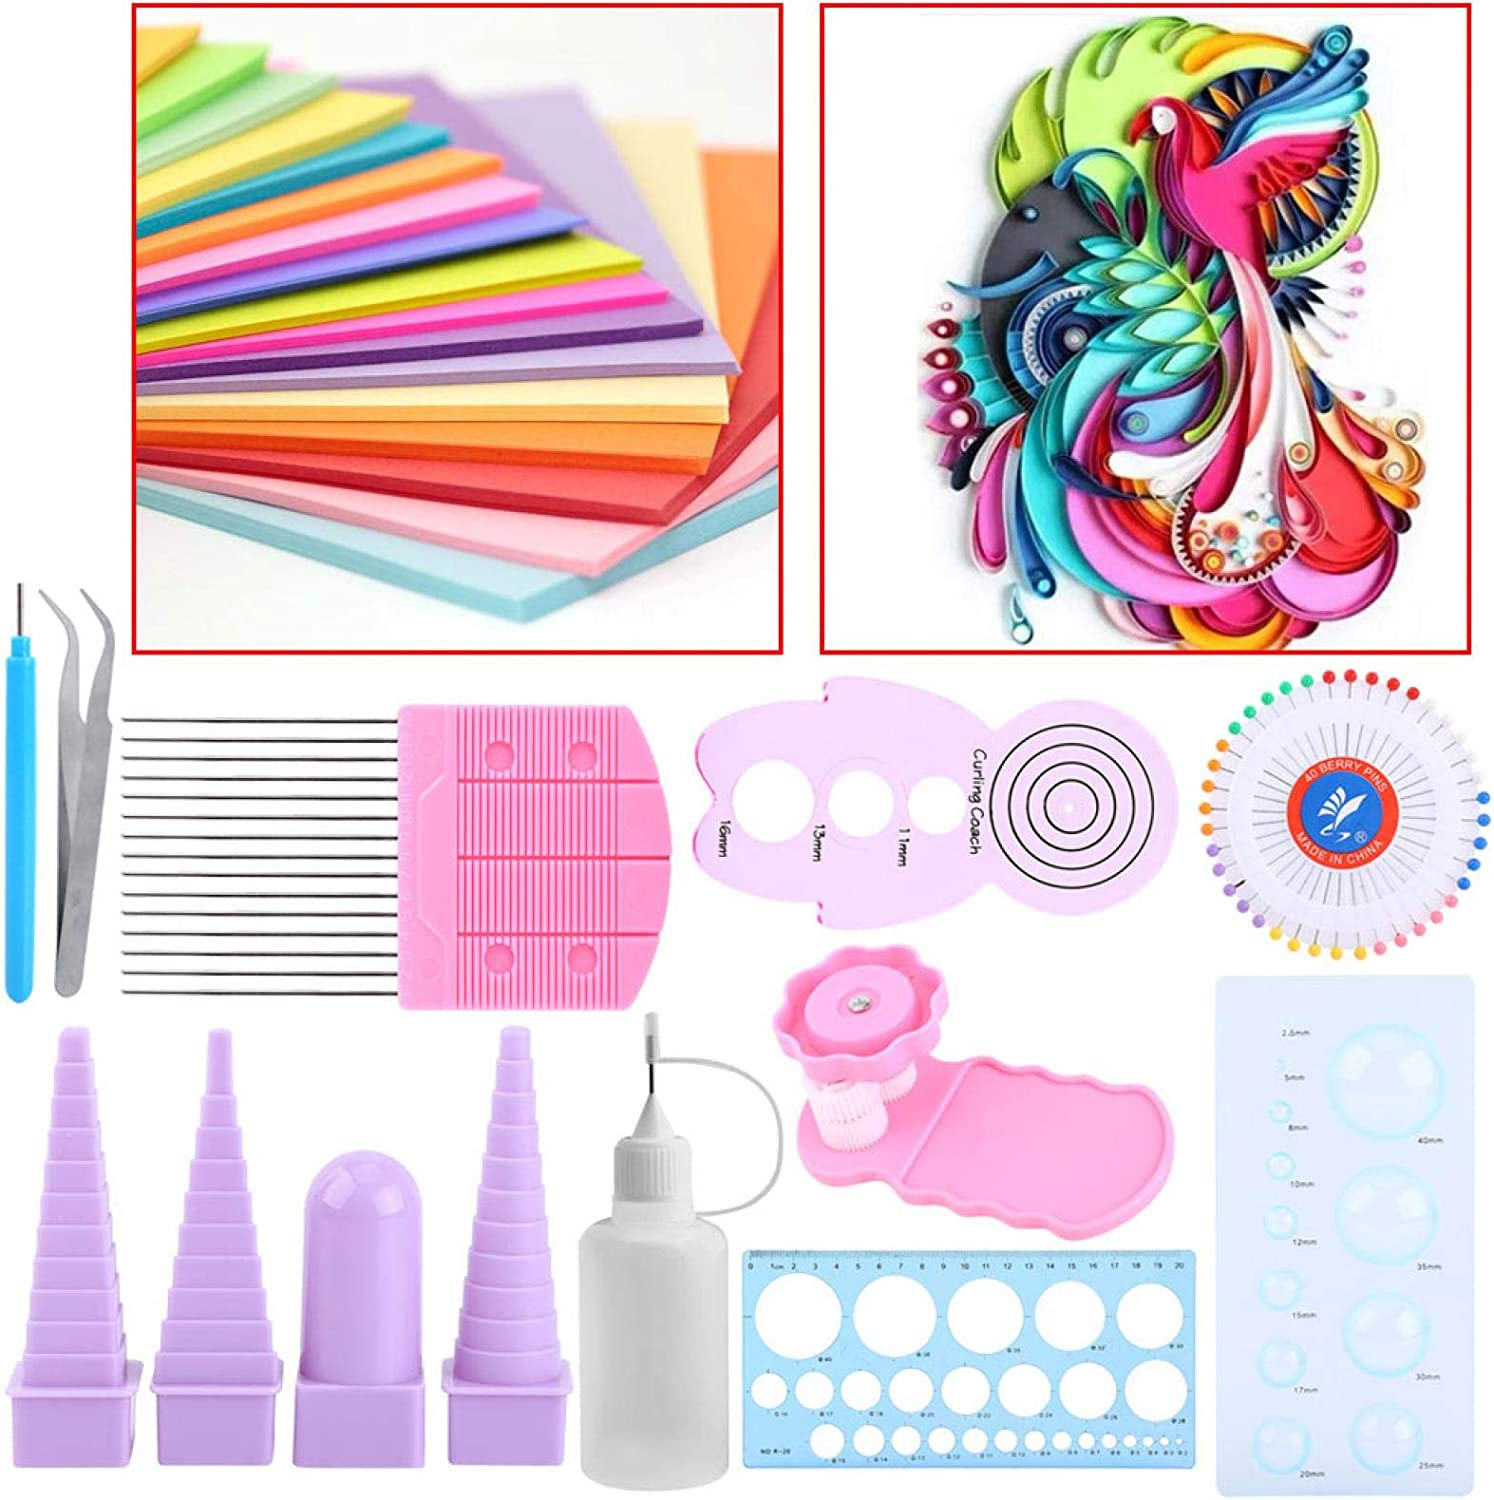 Durable Sturdy Quilling Crimper Tool Slotted Paper Quilling Tool